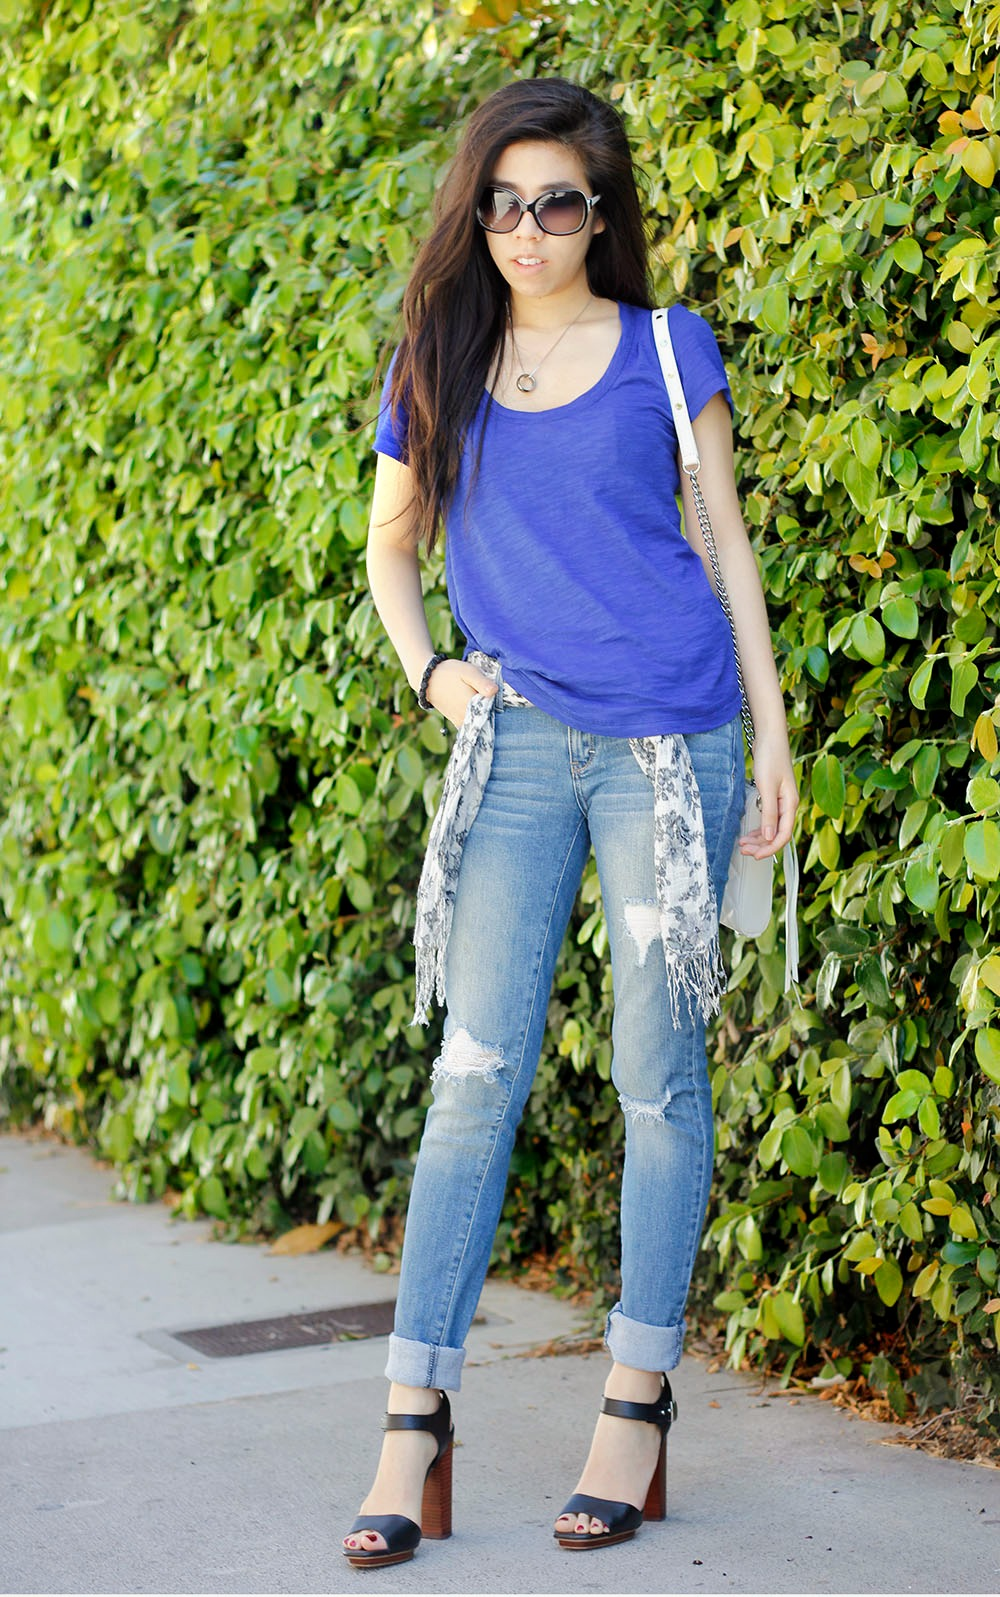 Casual Outfit _ Banana Republic Slub Scoop Neck Tee_Slouchy Oversized Tee Shirt _ Adrienne Nguyen _ Invictus